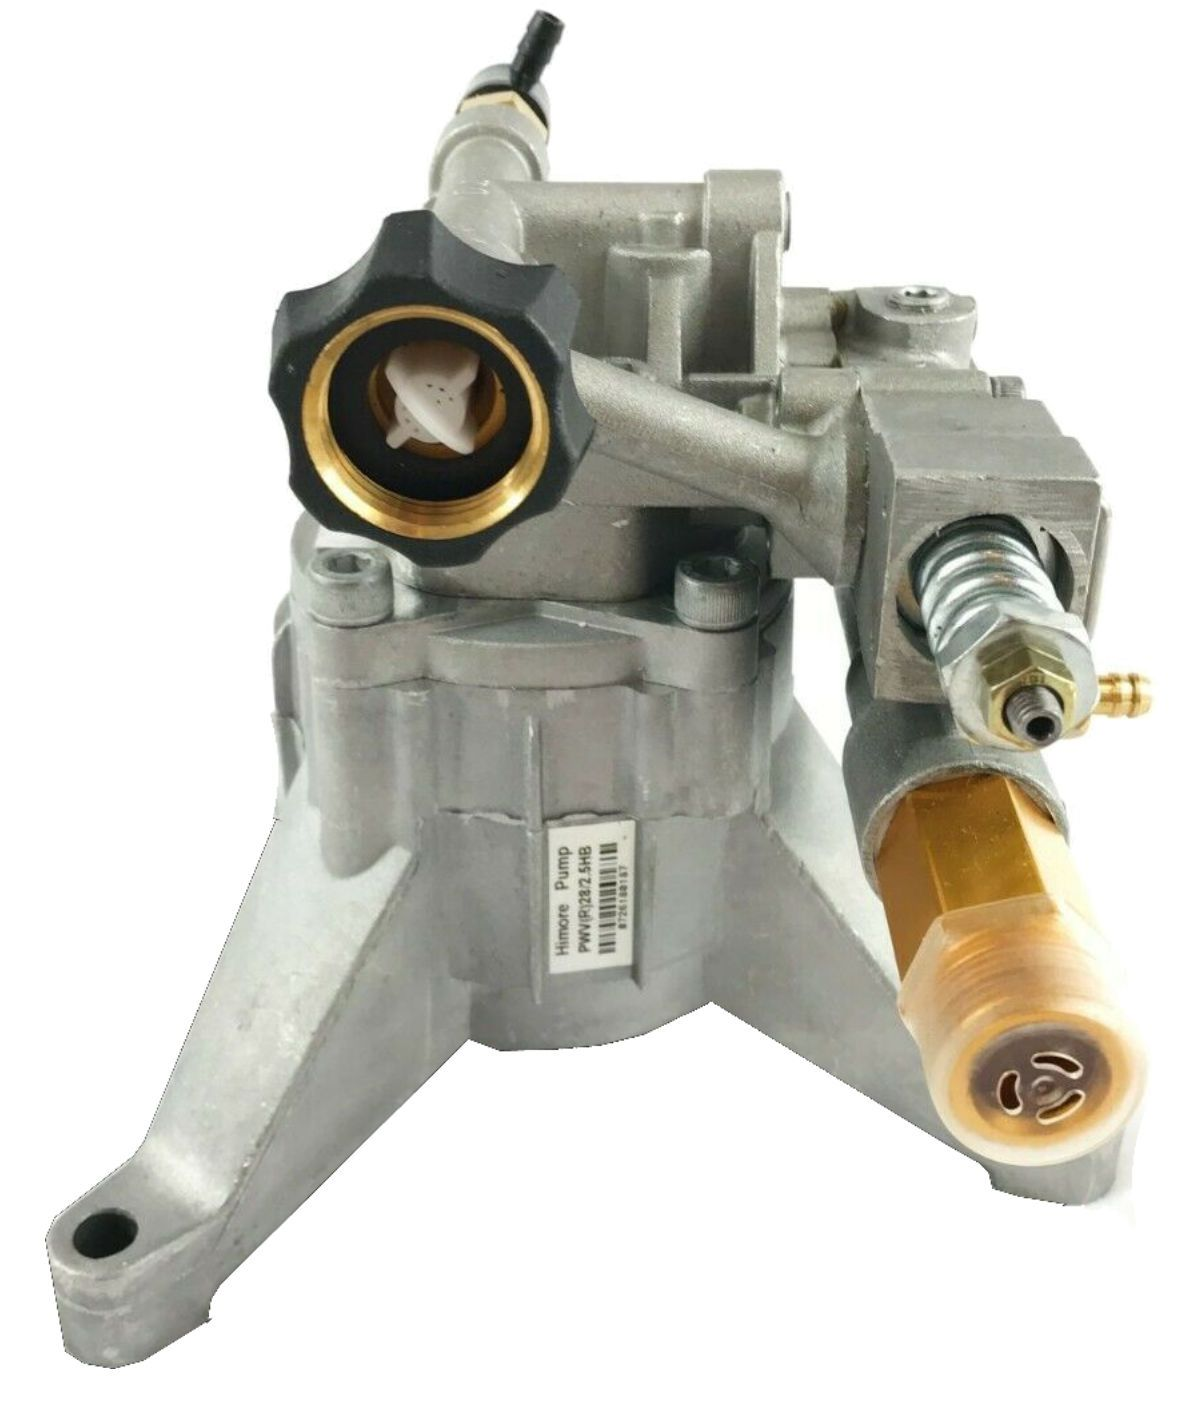 2700 PSI PRESSURE WASHER WATER PUMP fits Sears Craftsman 020277-0 020402-0 - AE-Power